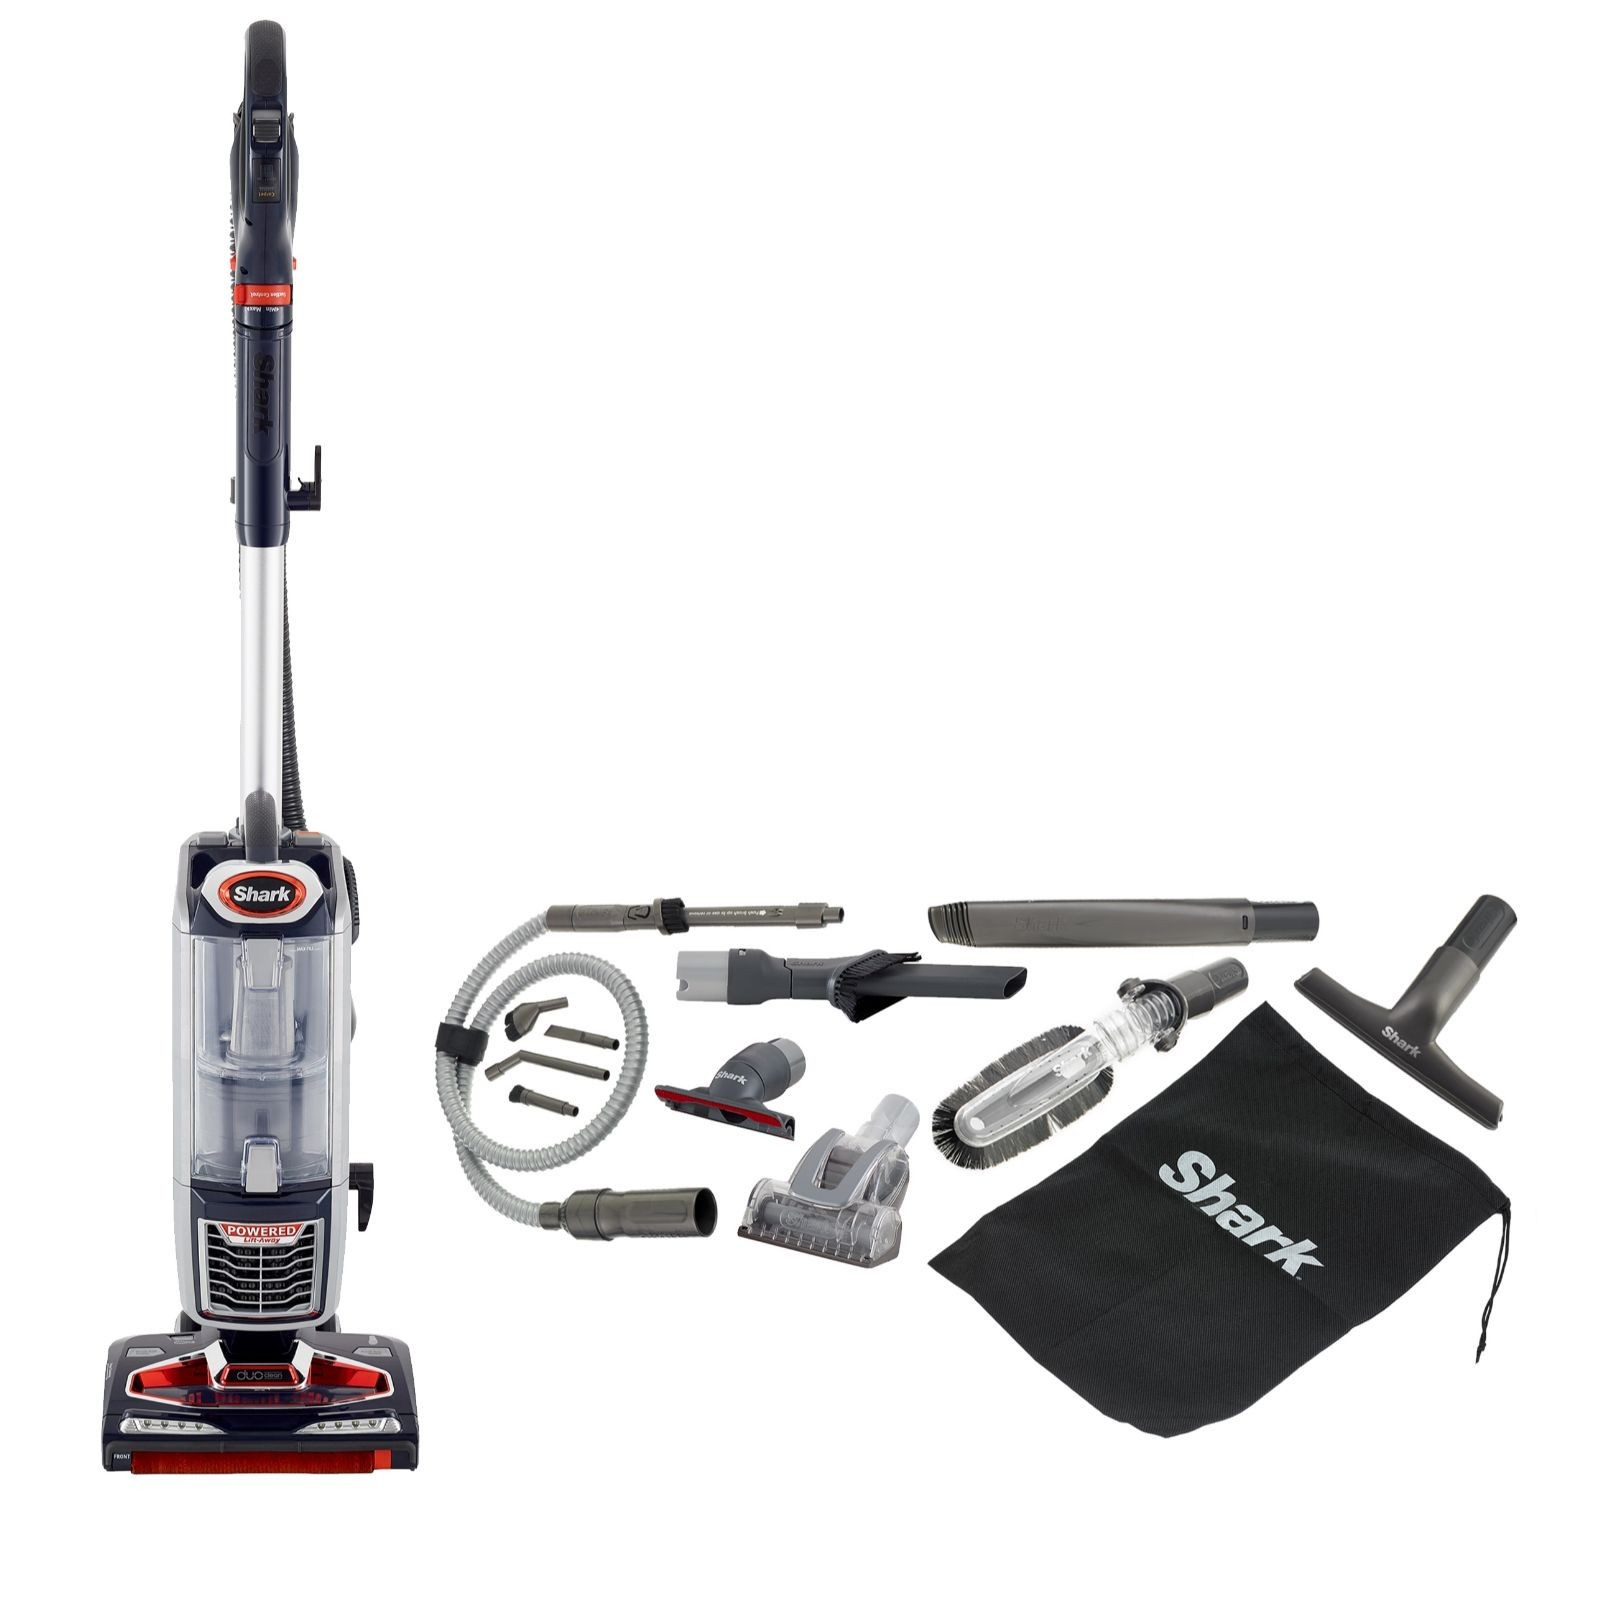 hardwood floor steam cleaner shark of 17 unique shark hardwood floor cleaner photograph dizpos com regarding shark hardwood floor cleaner best of shark duoclean powered lift away true pet vacuum cleaner with